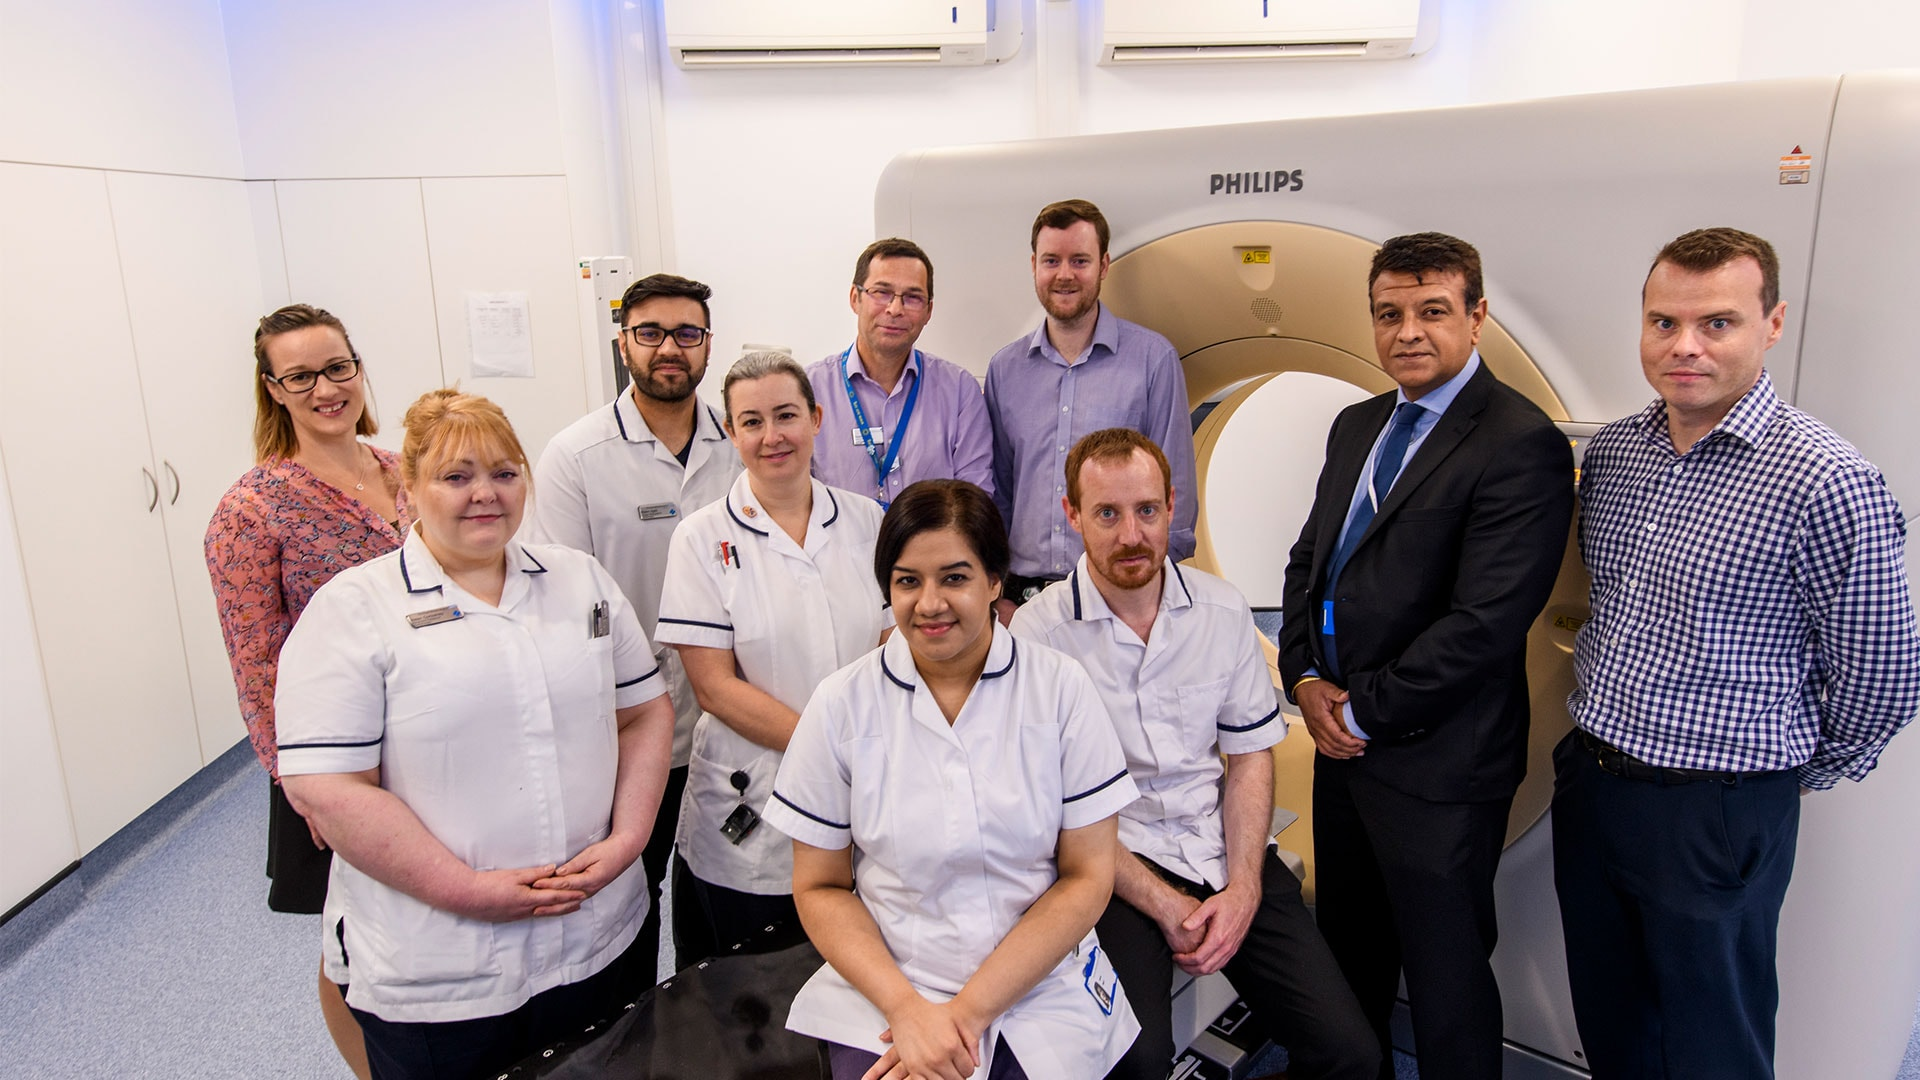 Shown left to right, Hannah Timbrell, Business Marketing Manager, Philips UKI; Helen Corbishley, Pre-treatment Advanced Practitioner; Wasim Ajaib, Senior Radiographer; Sarah Jhally, Pre-treatment Superintendent; Stephen West, Head of Radiography; Doug Northover, Clinical Scientist; Pete Bains, Account Manager and Jon Brigly, Marketing Manager, both of Philips UKI.   Seated in front on the left is Aisha Sajid, Pre-treatment Team Leader and on the right is Joshua Bayley, Pre-treatment Team Leader